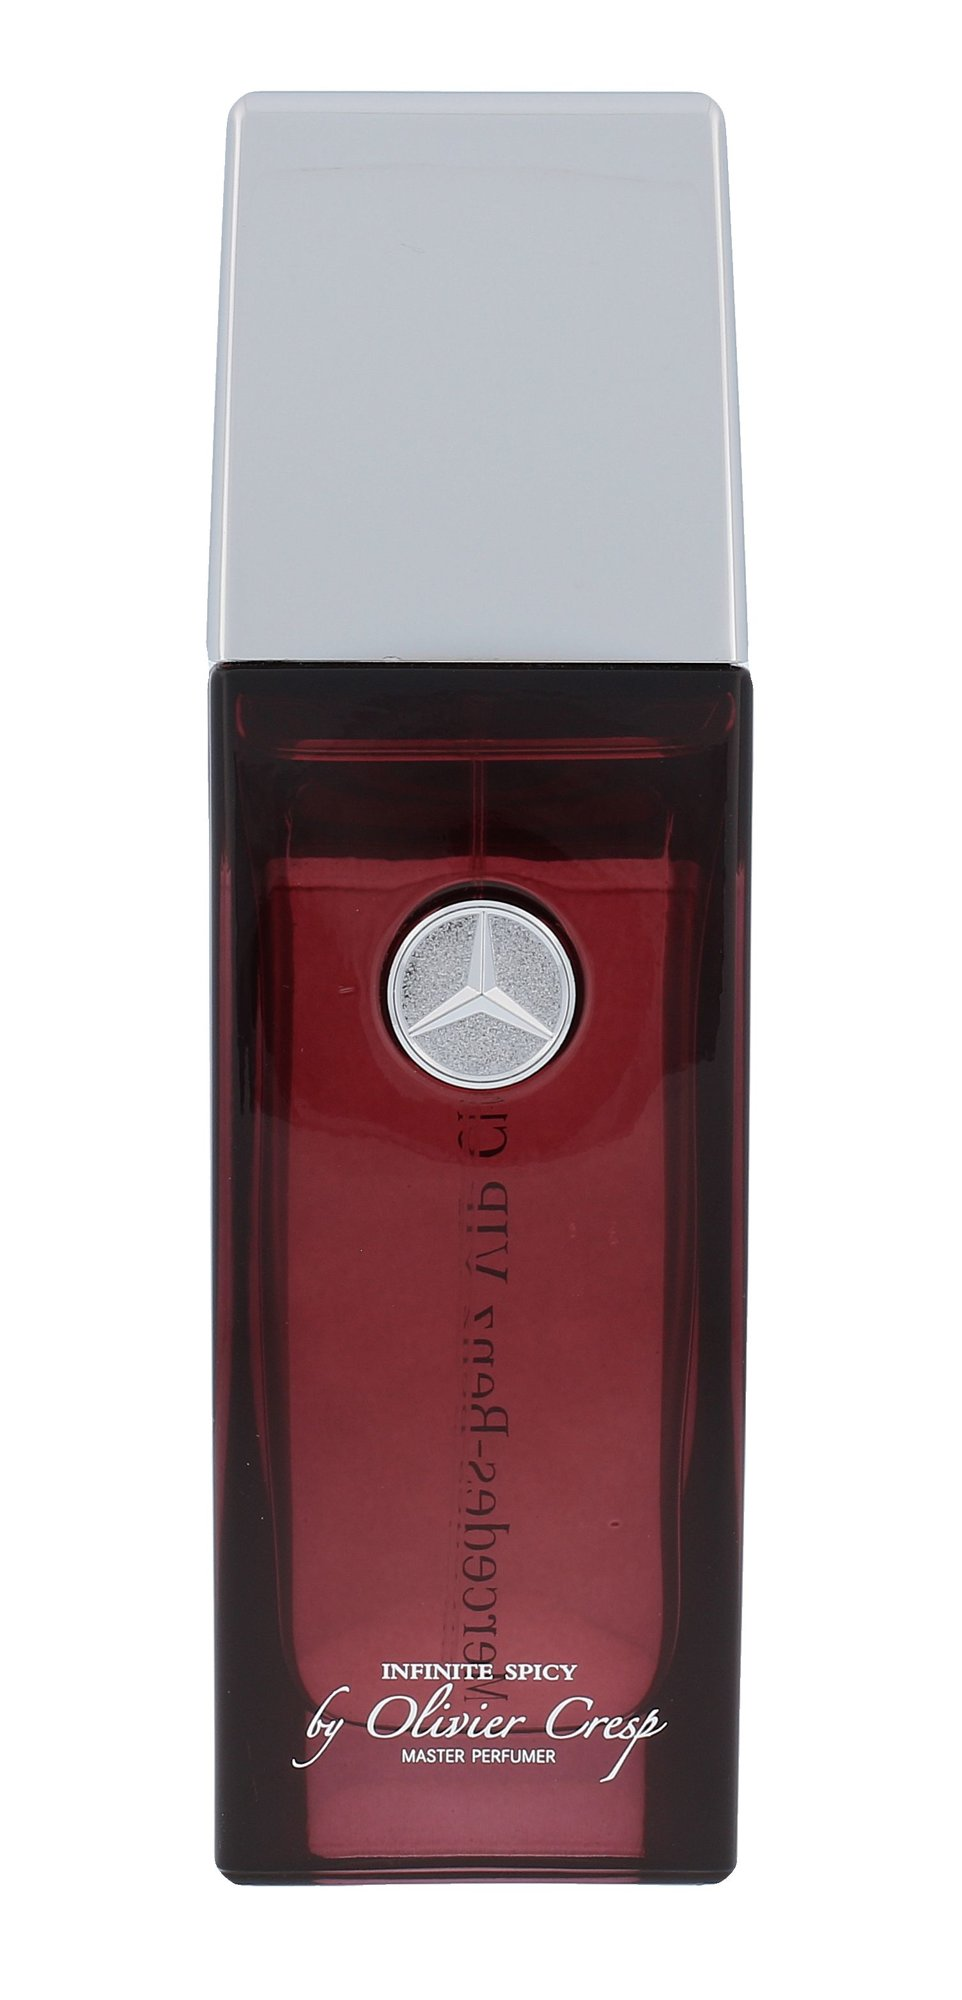 Mercedes-Benz Vip Club Infinite Spicy by Olivier Cresp EDT 100ml